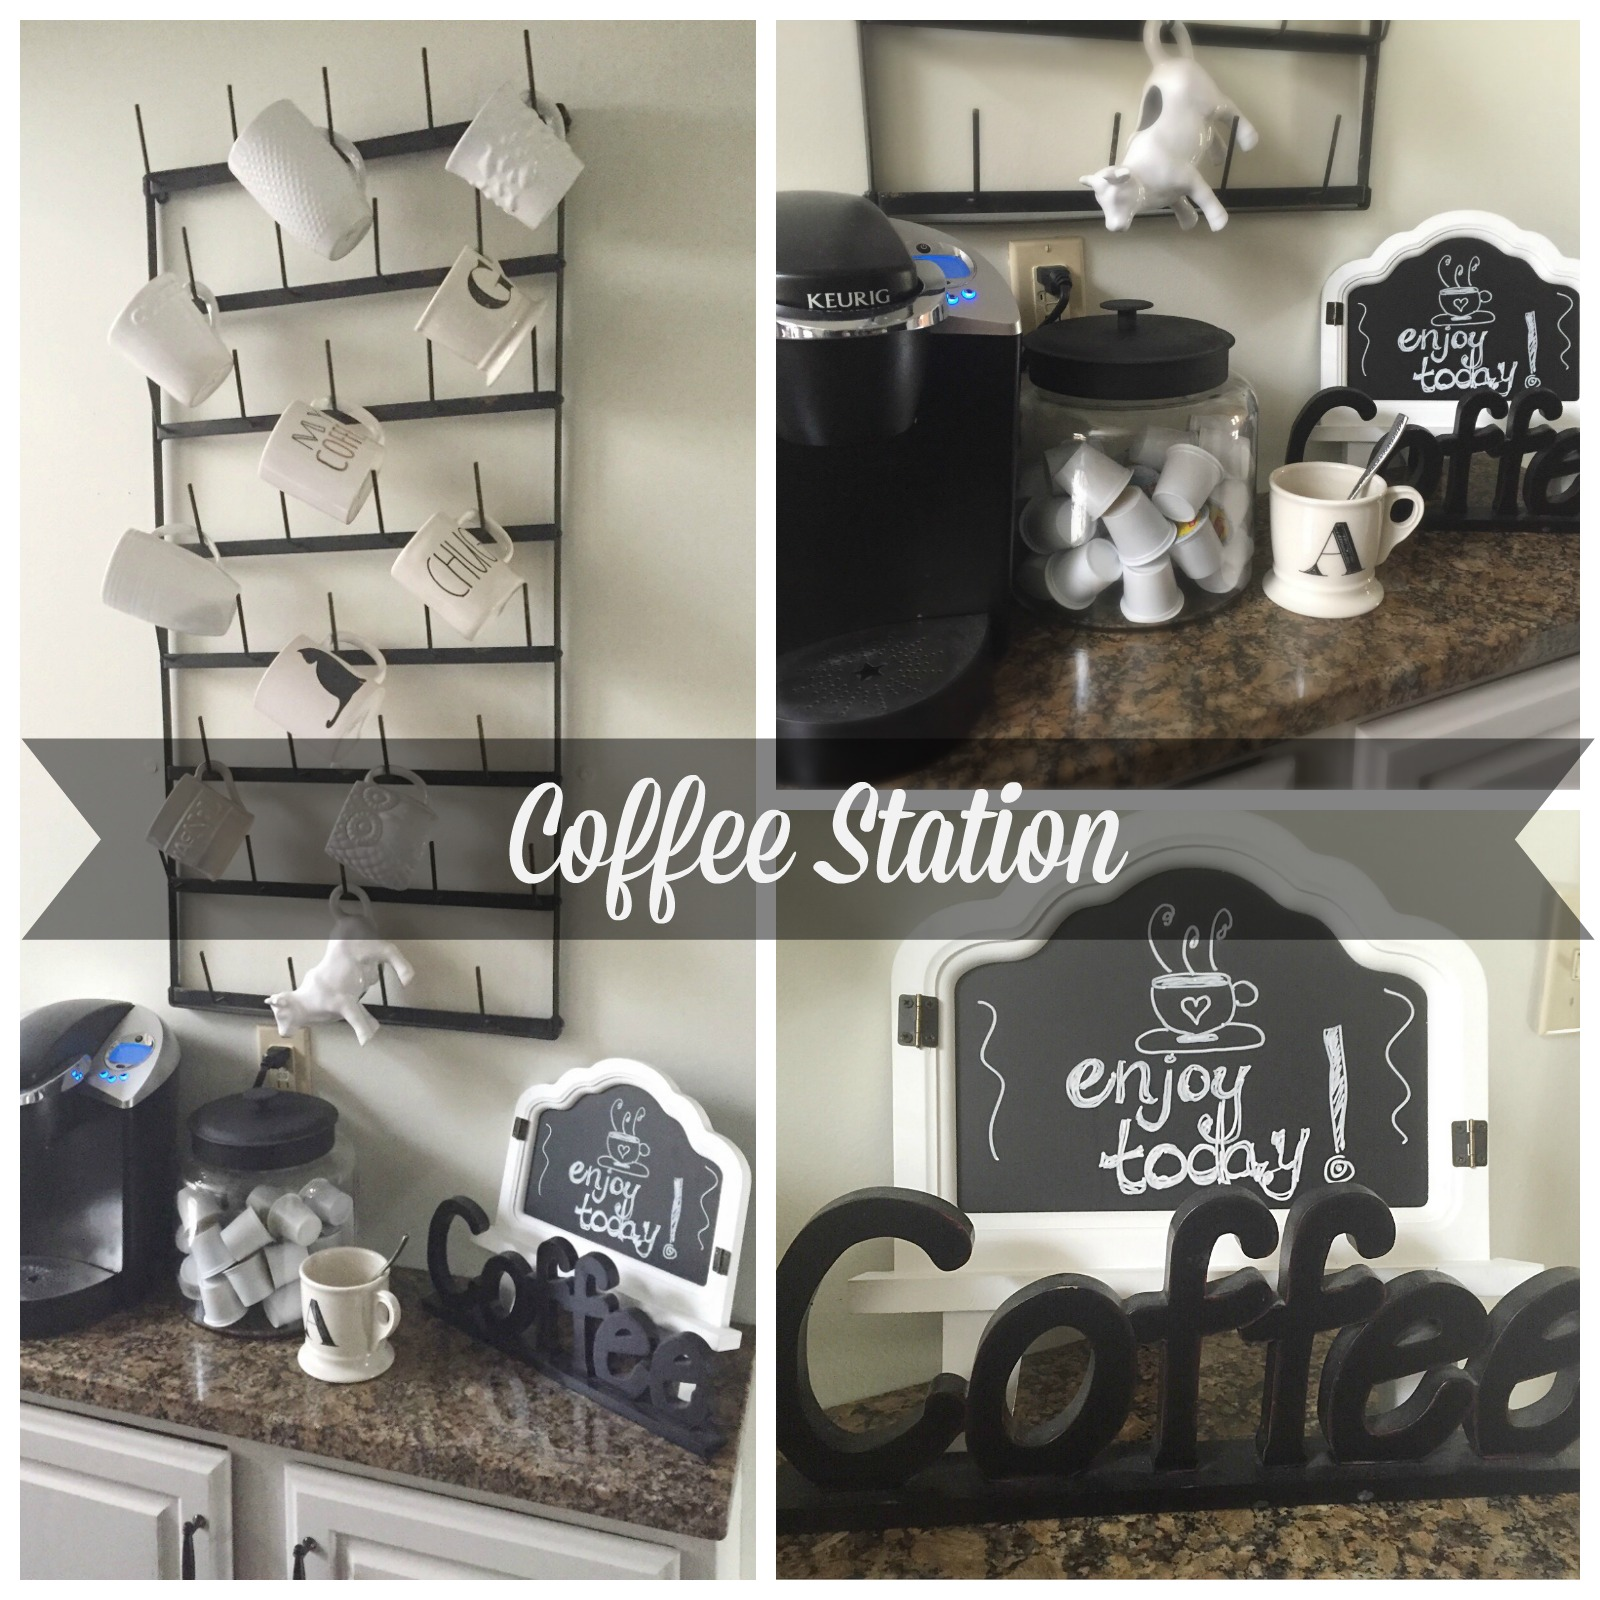 Coffee Station- creating a space for coffee- coffee area- organization- white mugs- mug rack